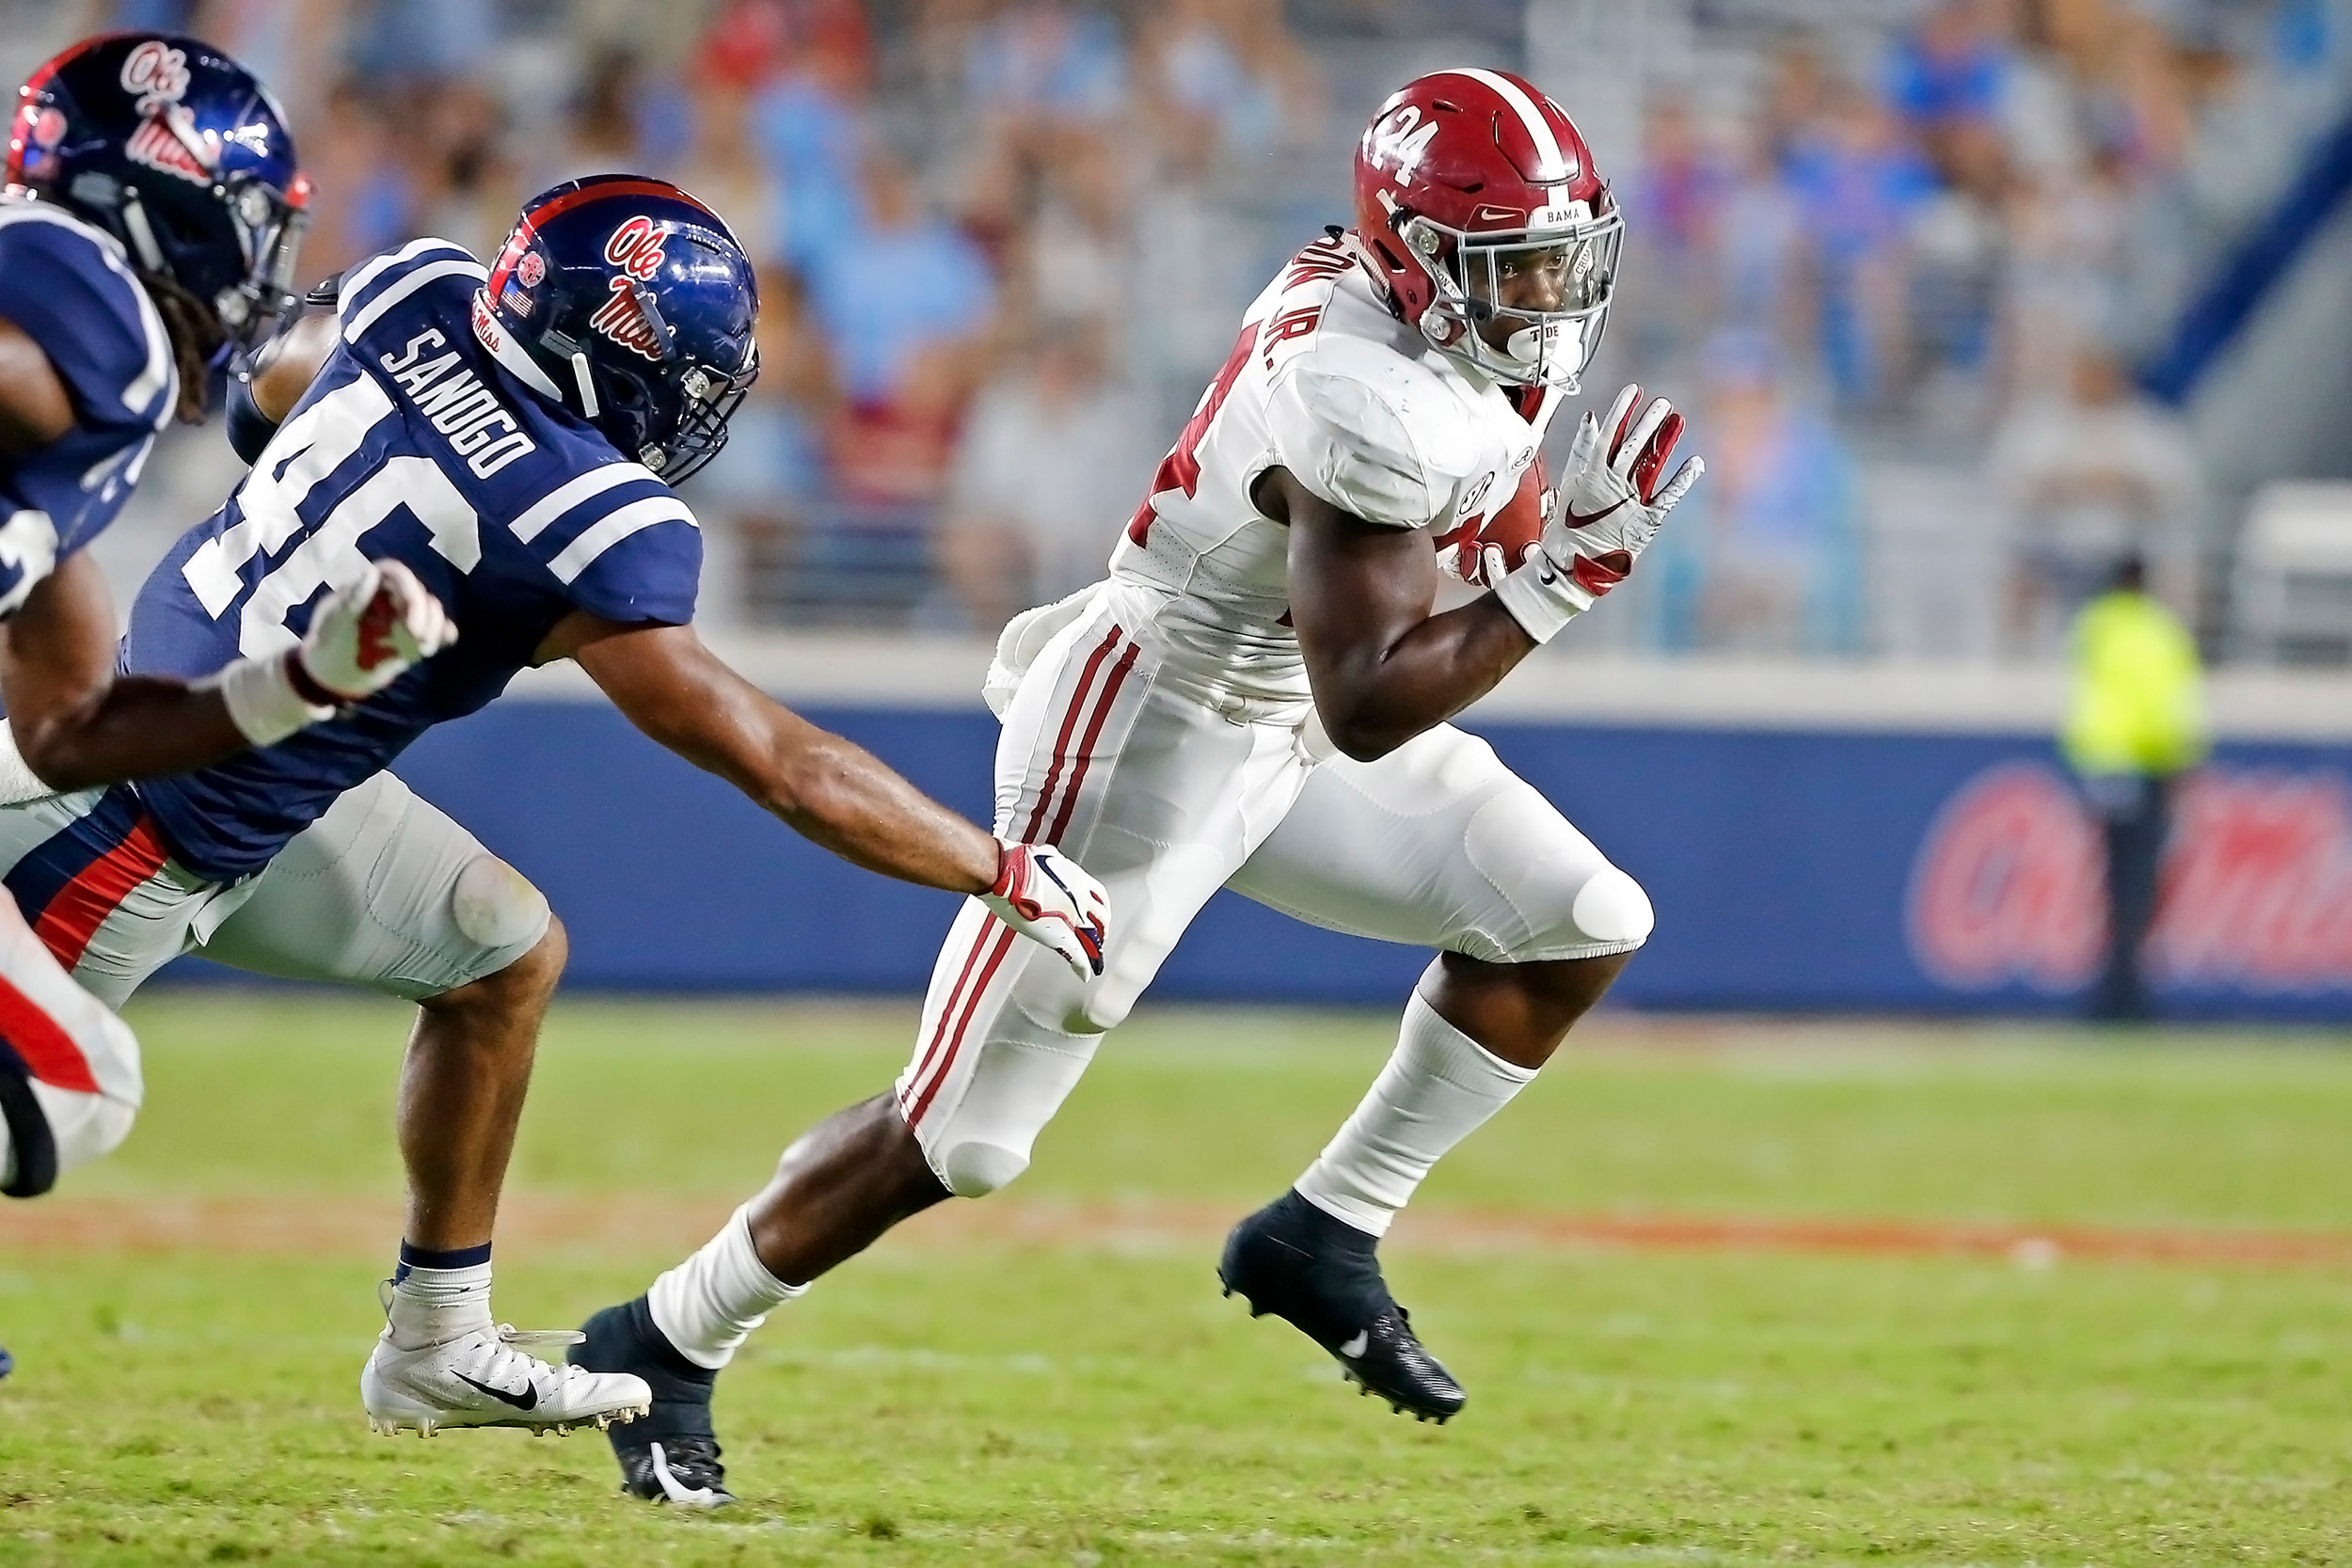 Alabama Crimson Tide running back Brian Robinson Jr. (24) rushes for a first down during the game between the University of Alabama and Ole Miss at Vaught-Hemingway Stadium. Jason Clark / Daily Mountain Eagle